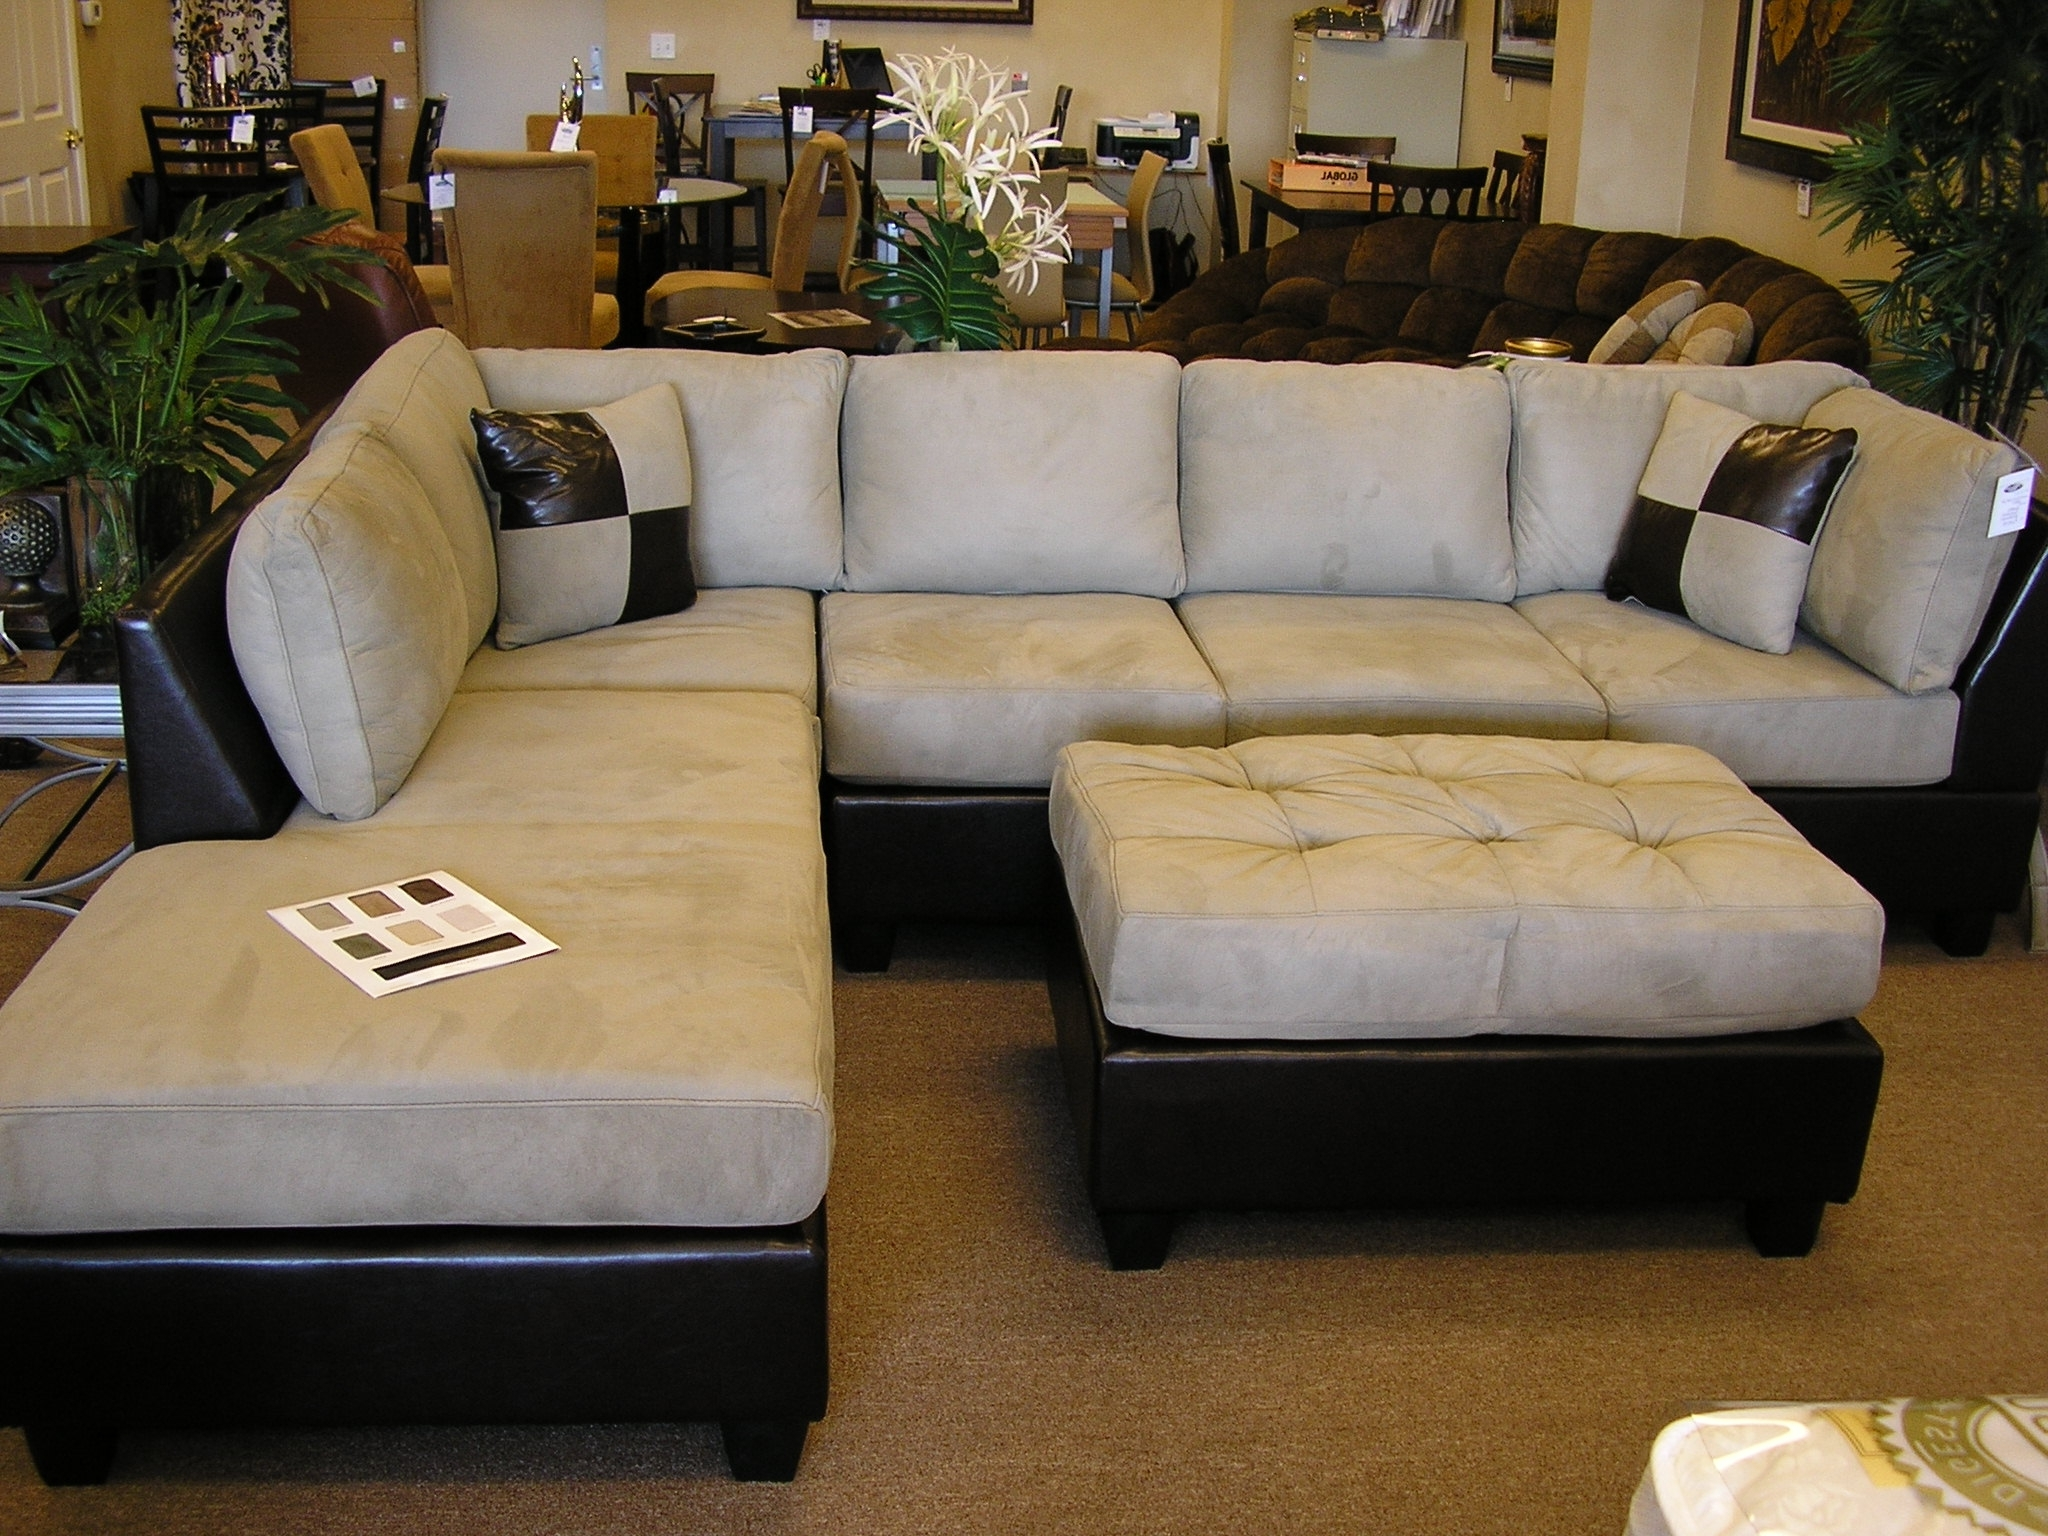 Sofas With Chaise And Ottoman Throughout Fashionable Furniture : Sectional Chaise Lounge Sofa Double Along With (View 7 of 20)